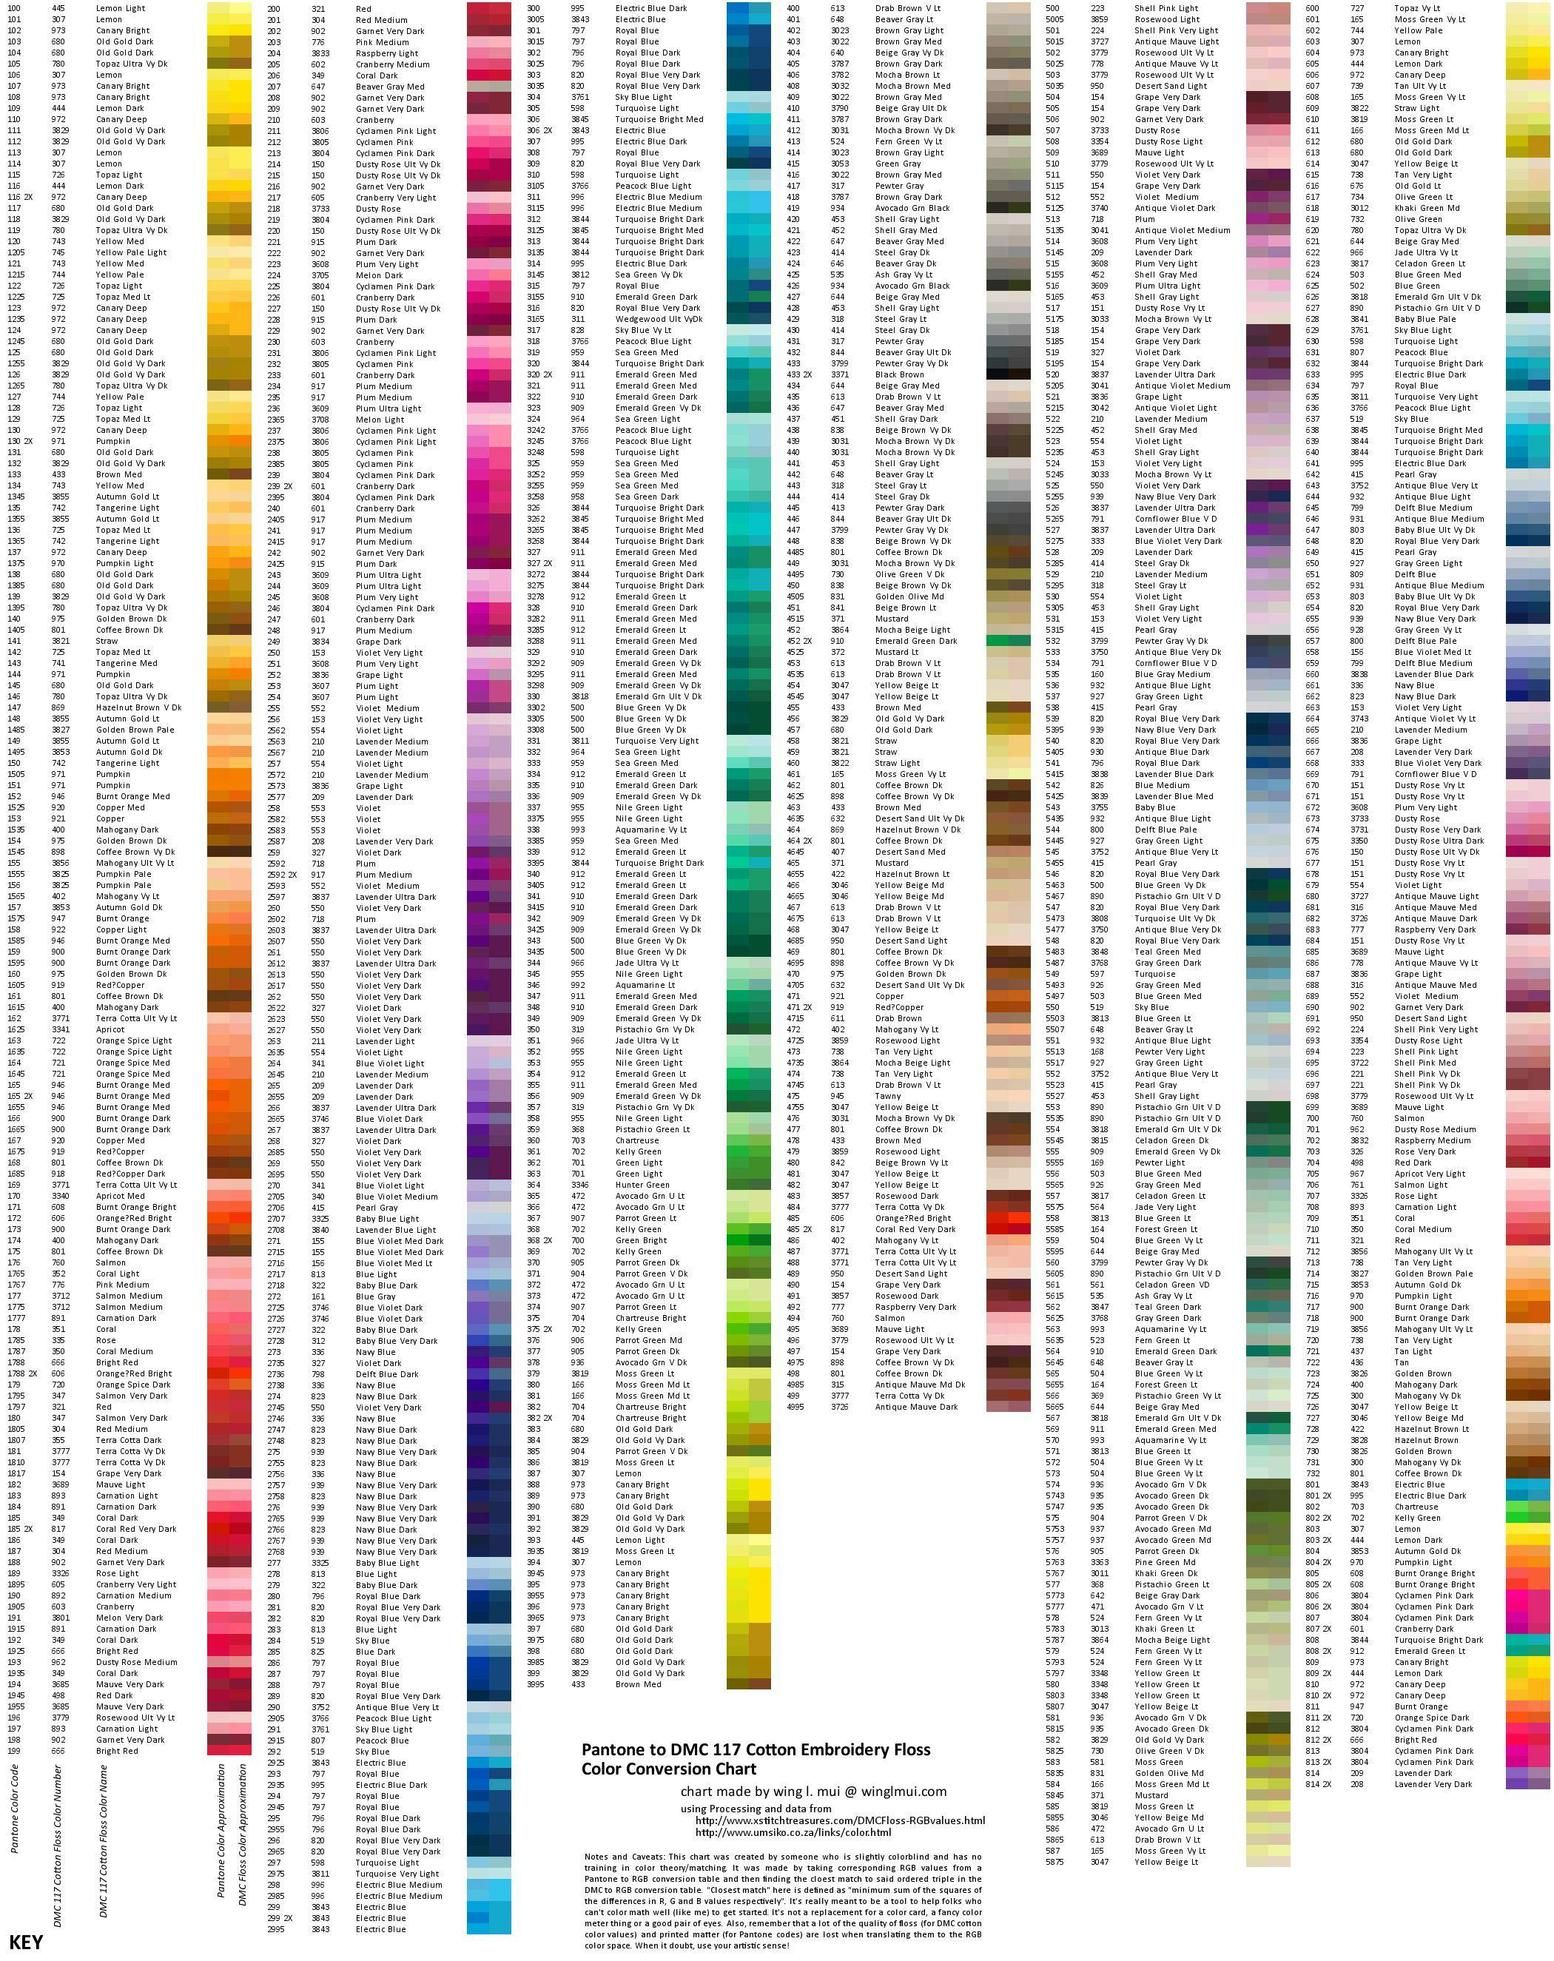 Pantone conversion chart gallery chart design ideas the most awesome images on the internet pantone color pantone pantone to dmc color conversion chart nvjuhfo Choice Image